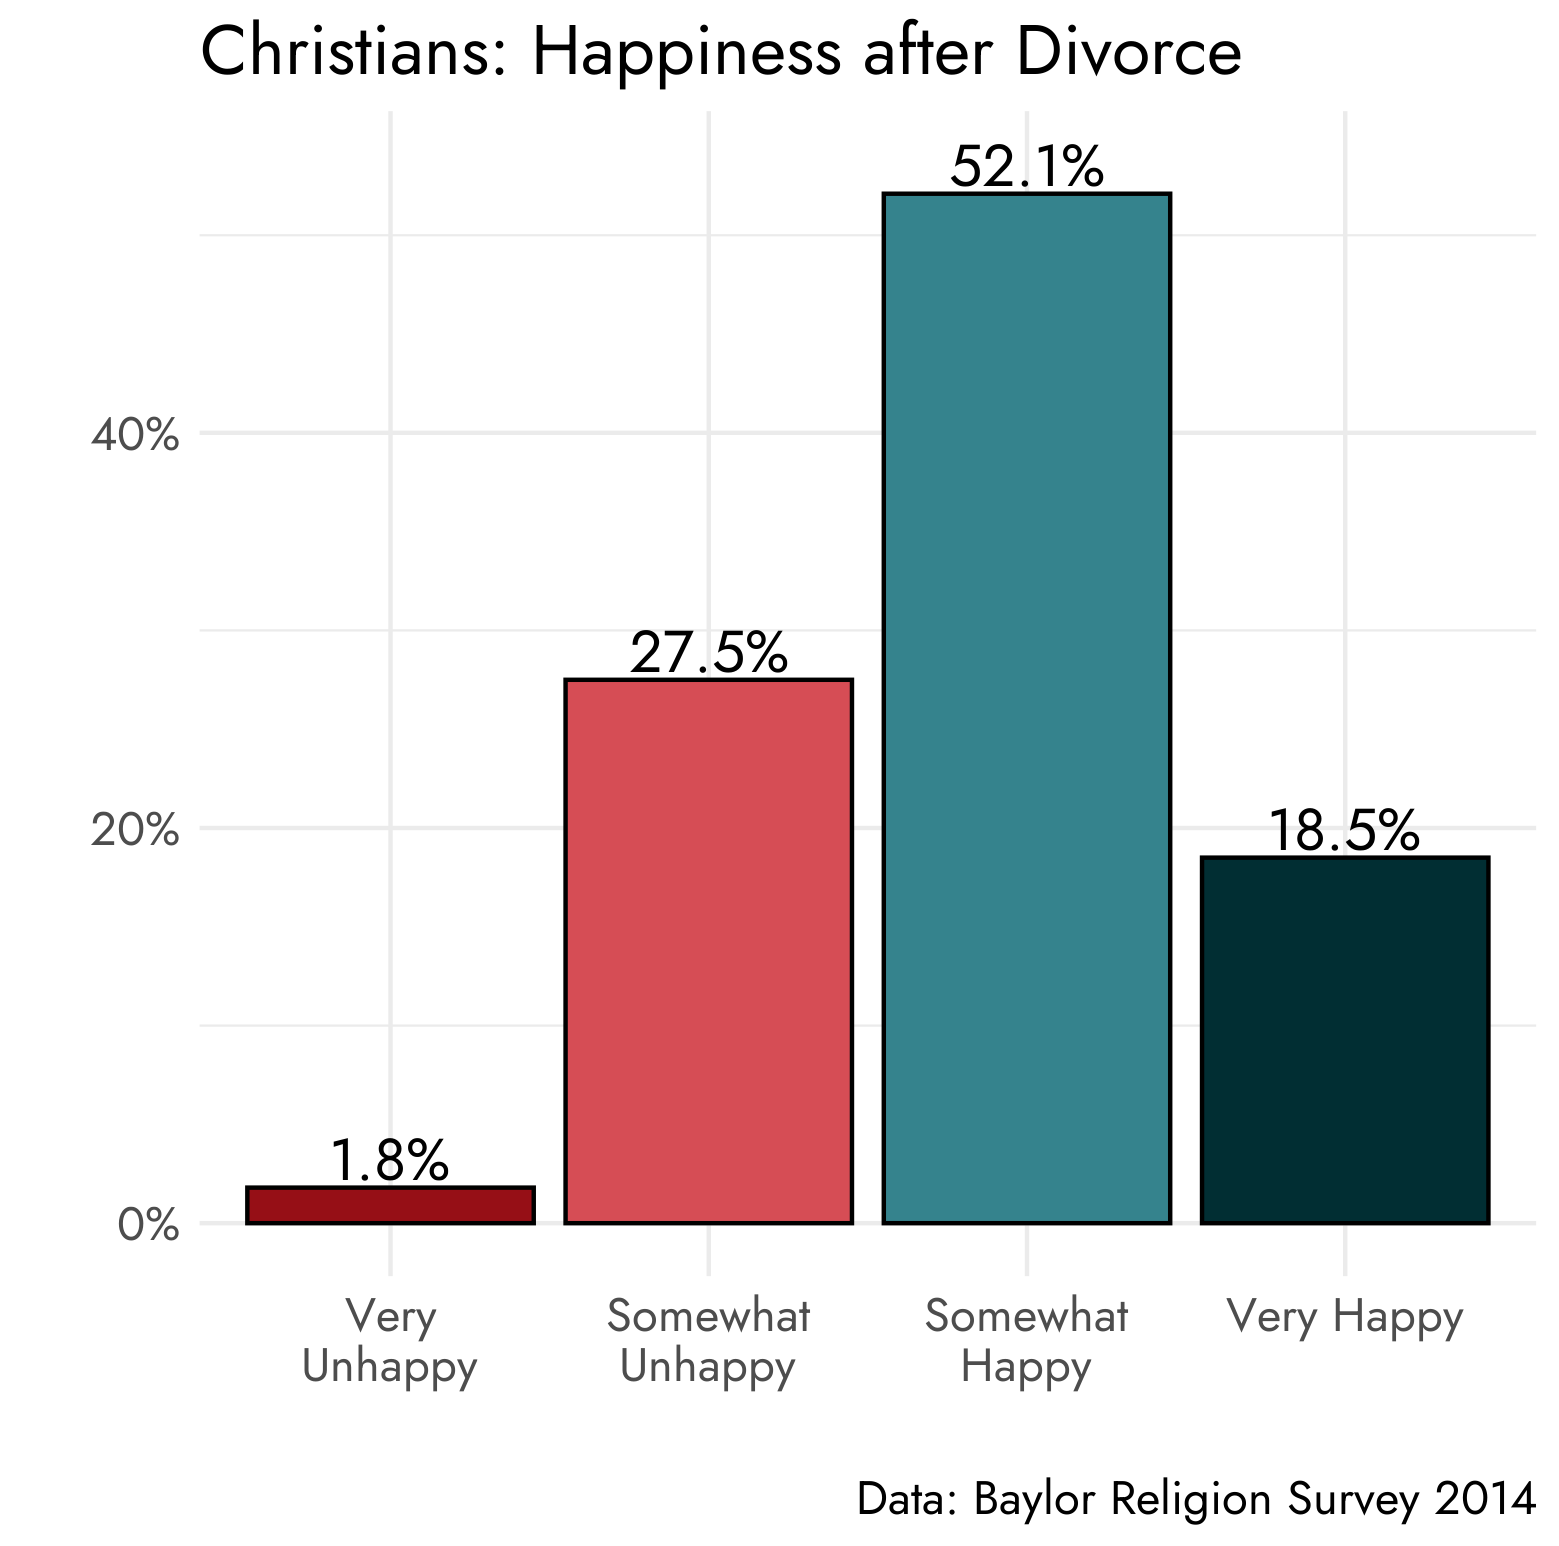 7 in 10 Chrisitans reported they were happy after divorce according to the Baylor Religion Survey 2014 data